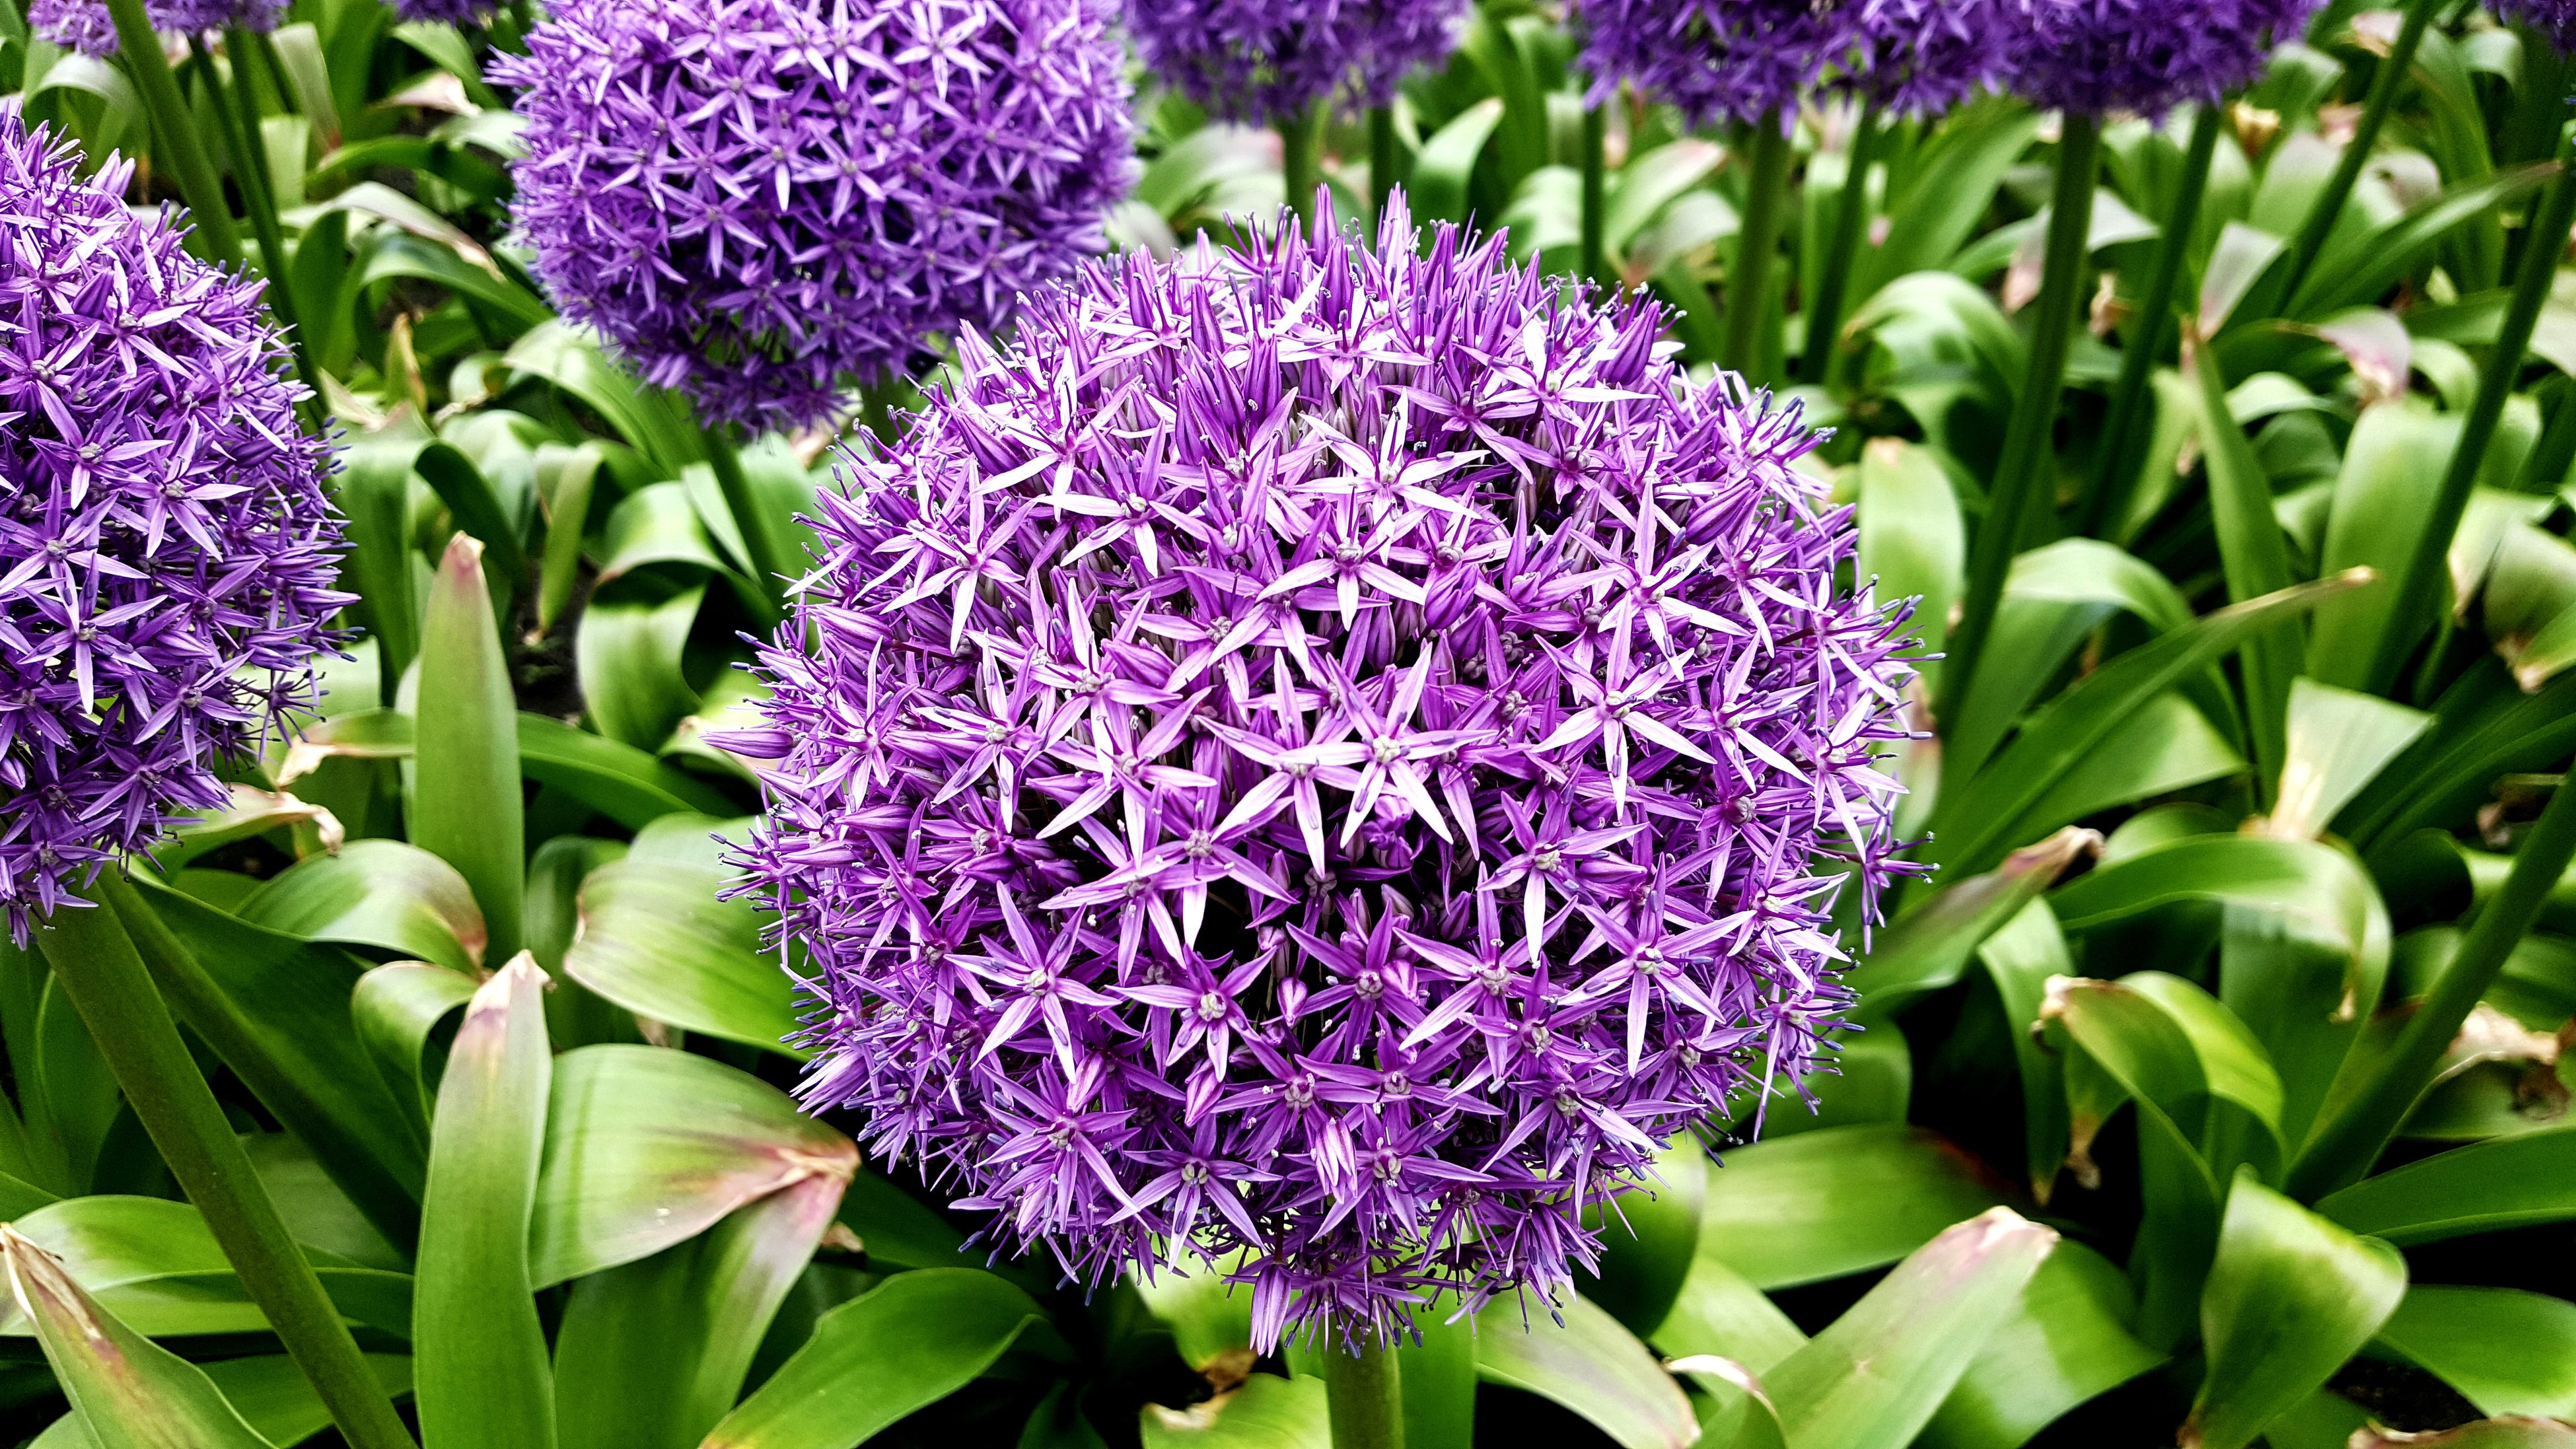 purple, growth, flower, beauty in nature, nature, petal, plant, day, freshness, outdoors, fragility, no people, green color, flower head, blooming, close-up